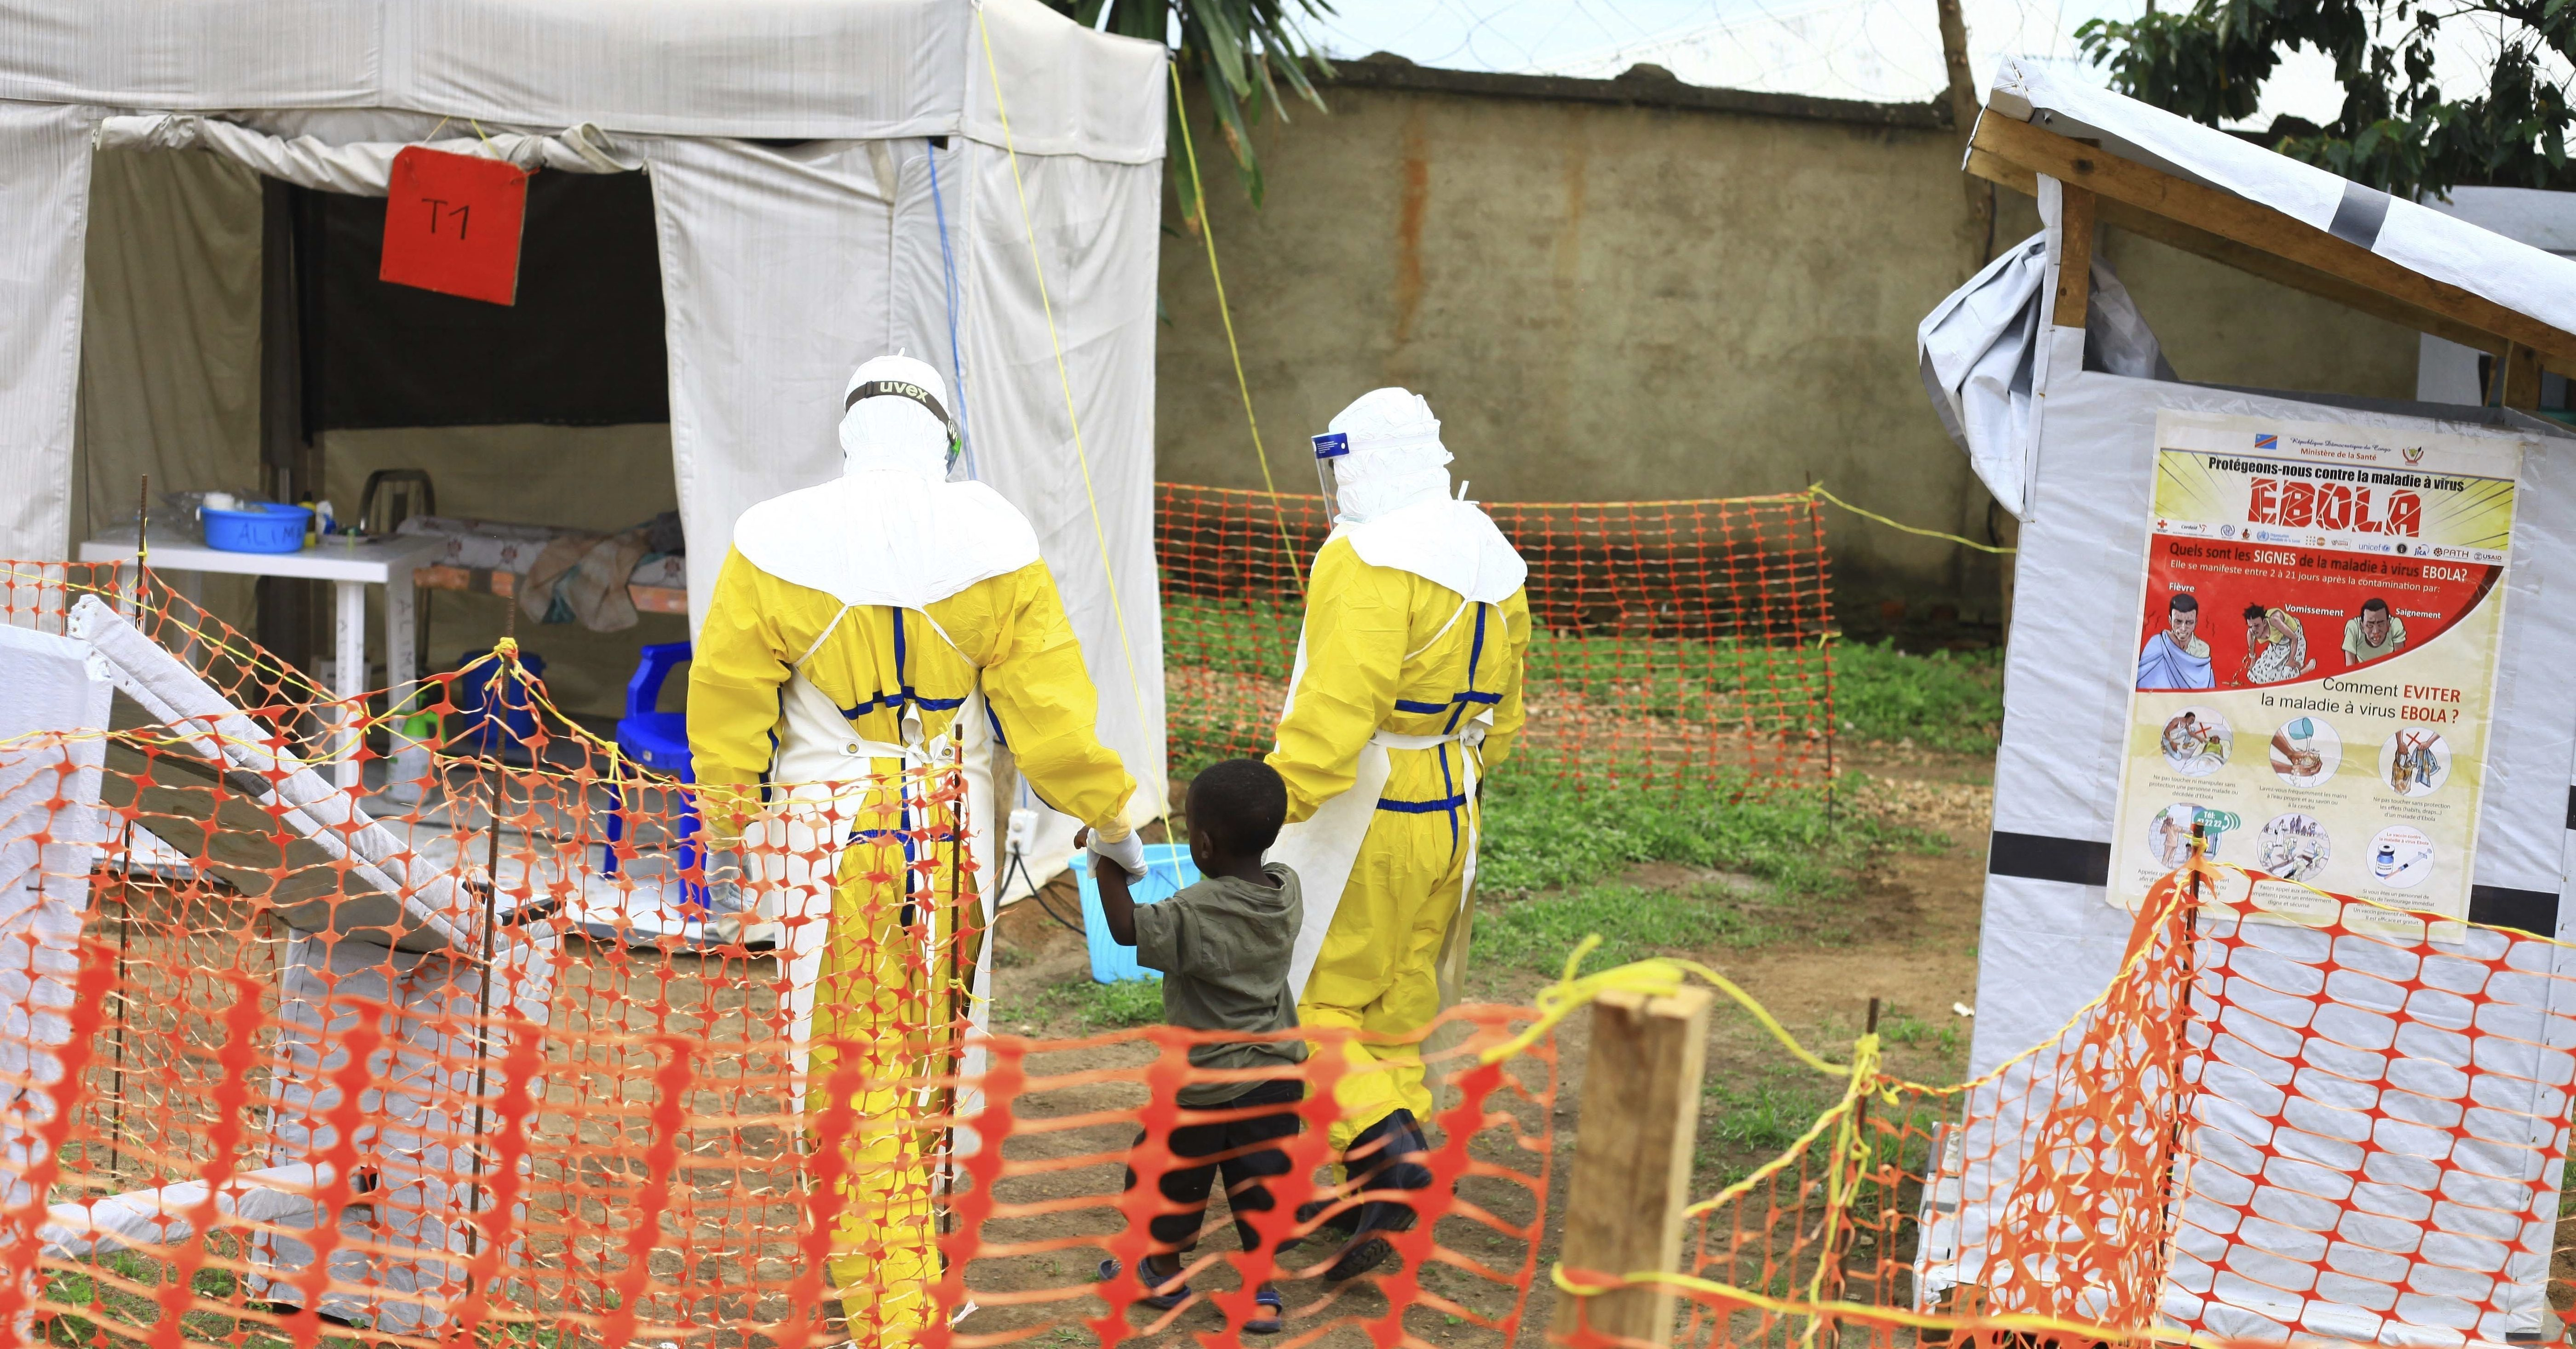 Health workers walk with a boy suspected of having the Ebola virus Sept. 9 at an Ebola treatment center in Beni, Eastern Congo.